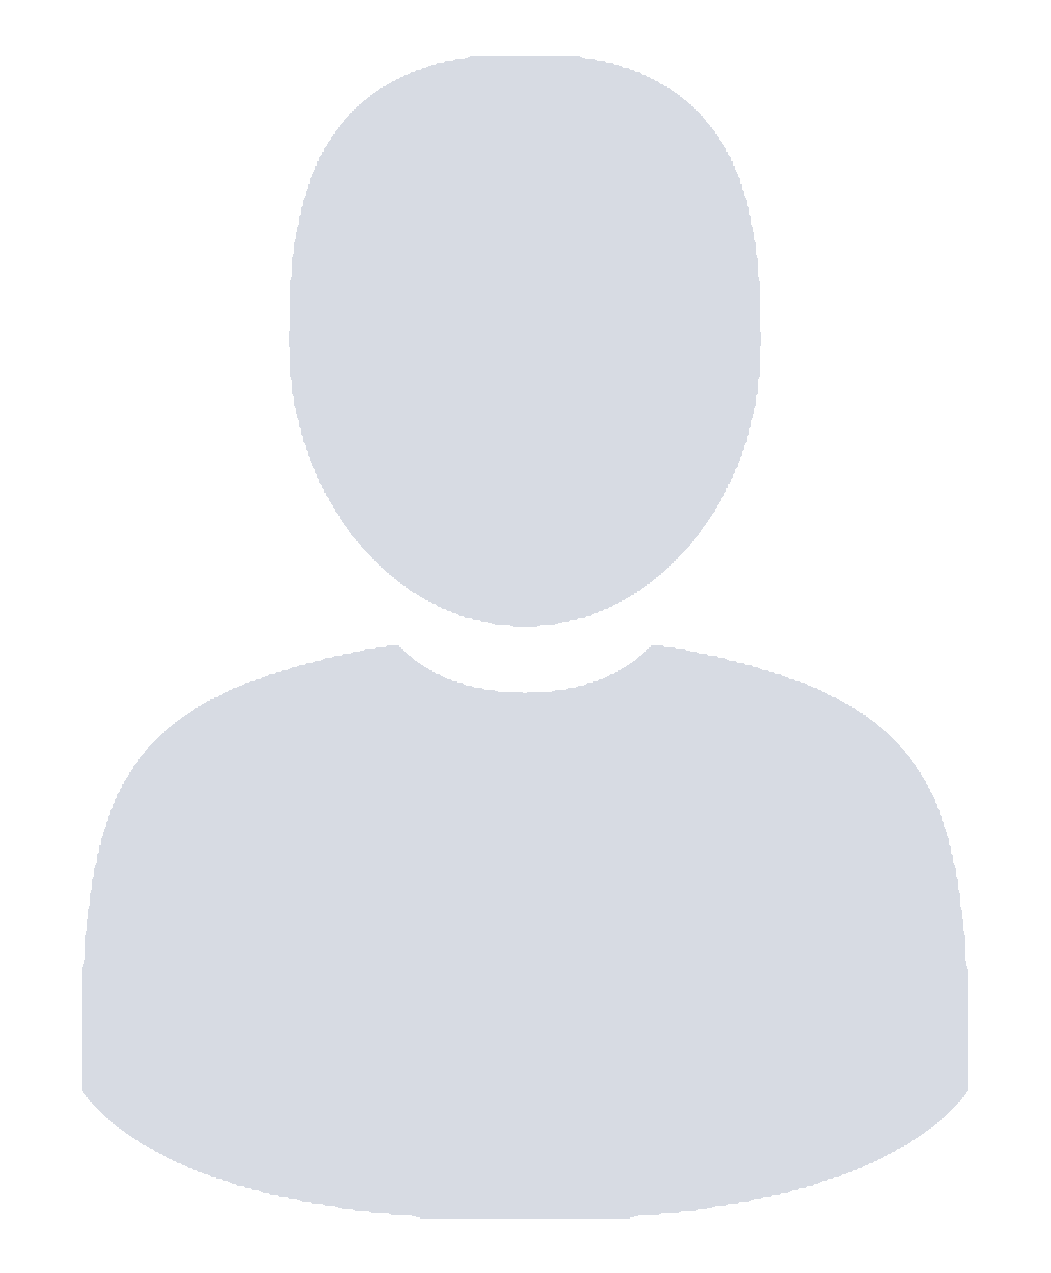 Director of Evidence profile image